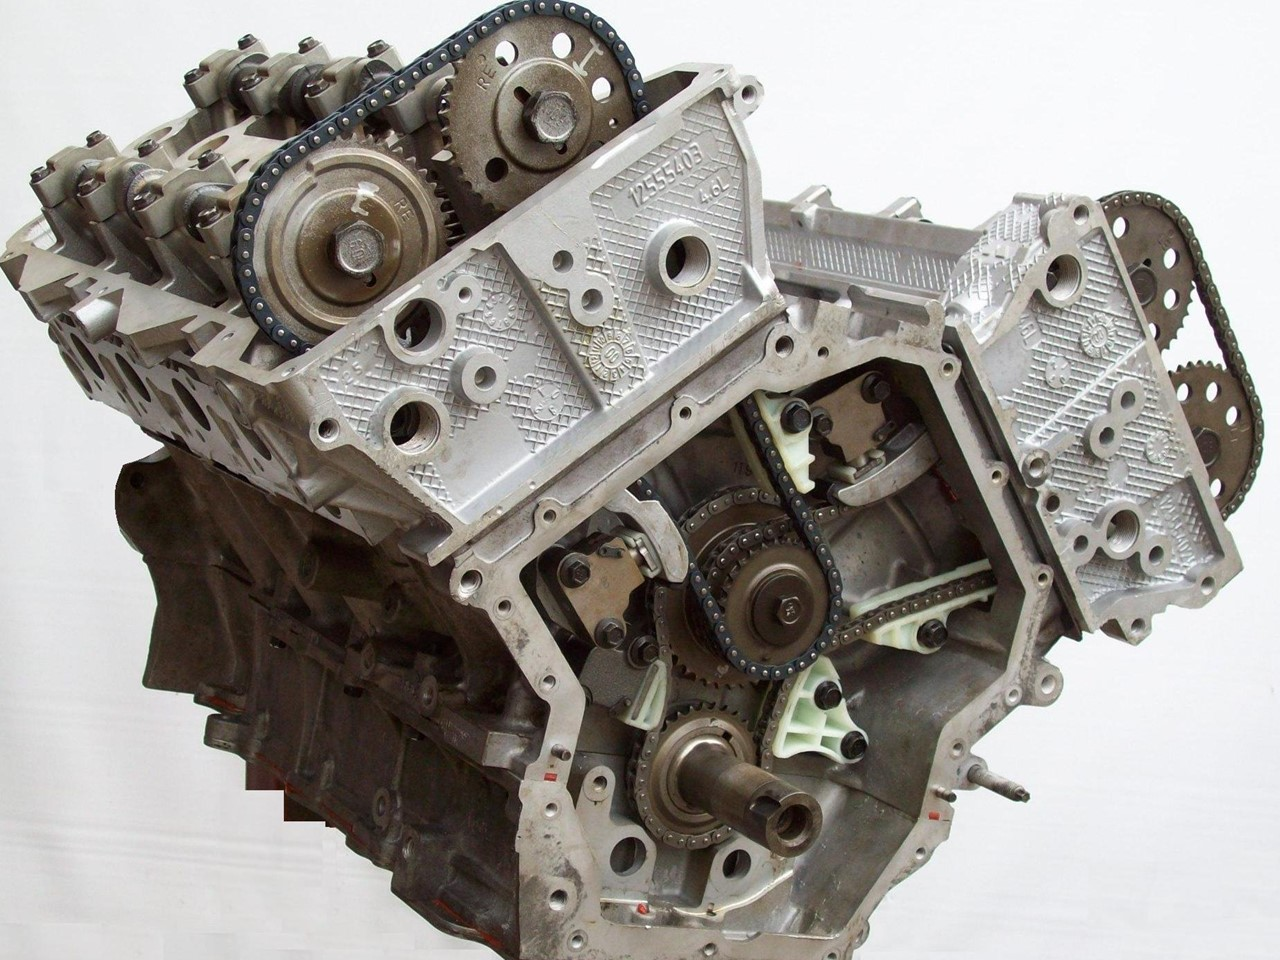 Northstar V8 engine 2